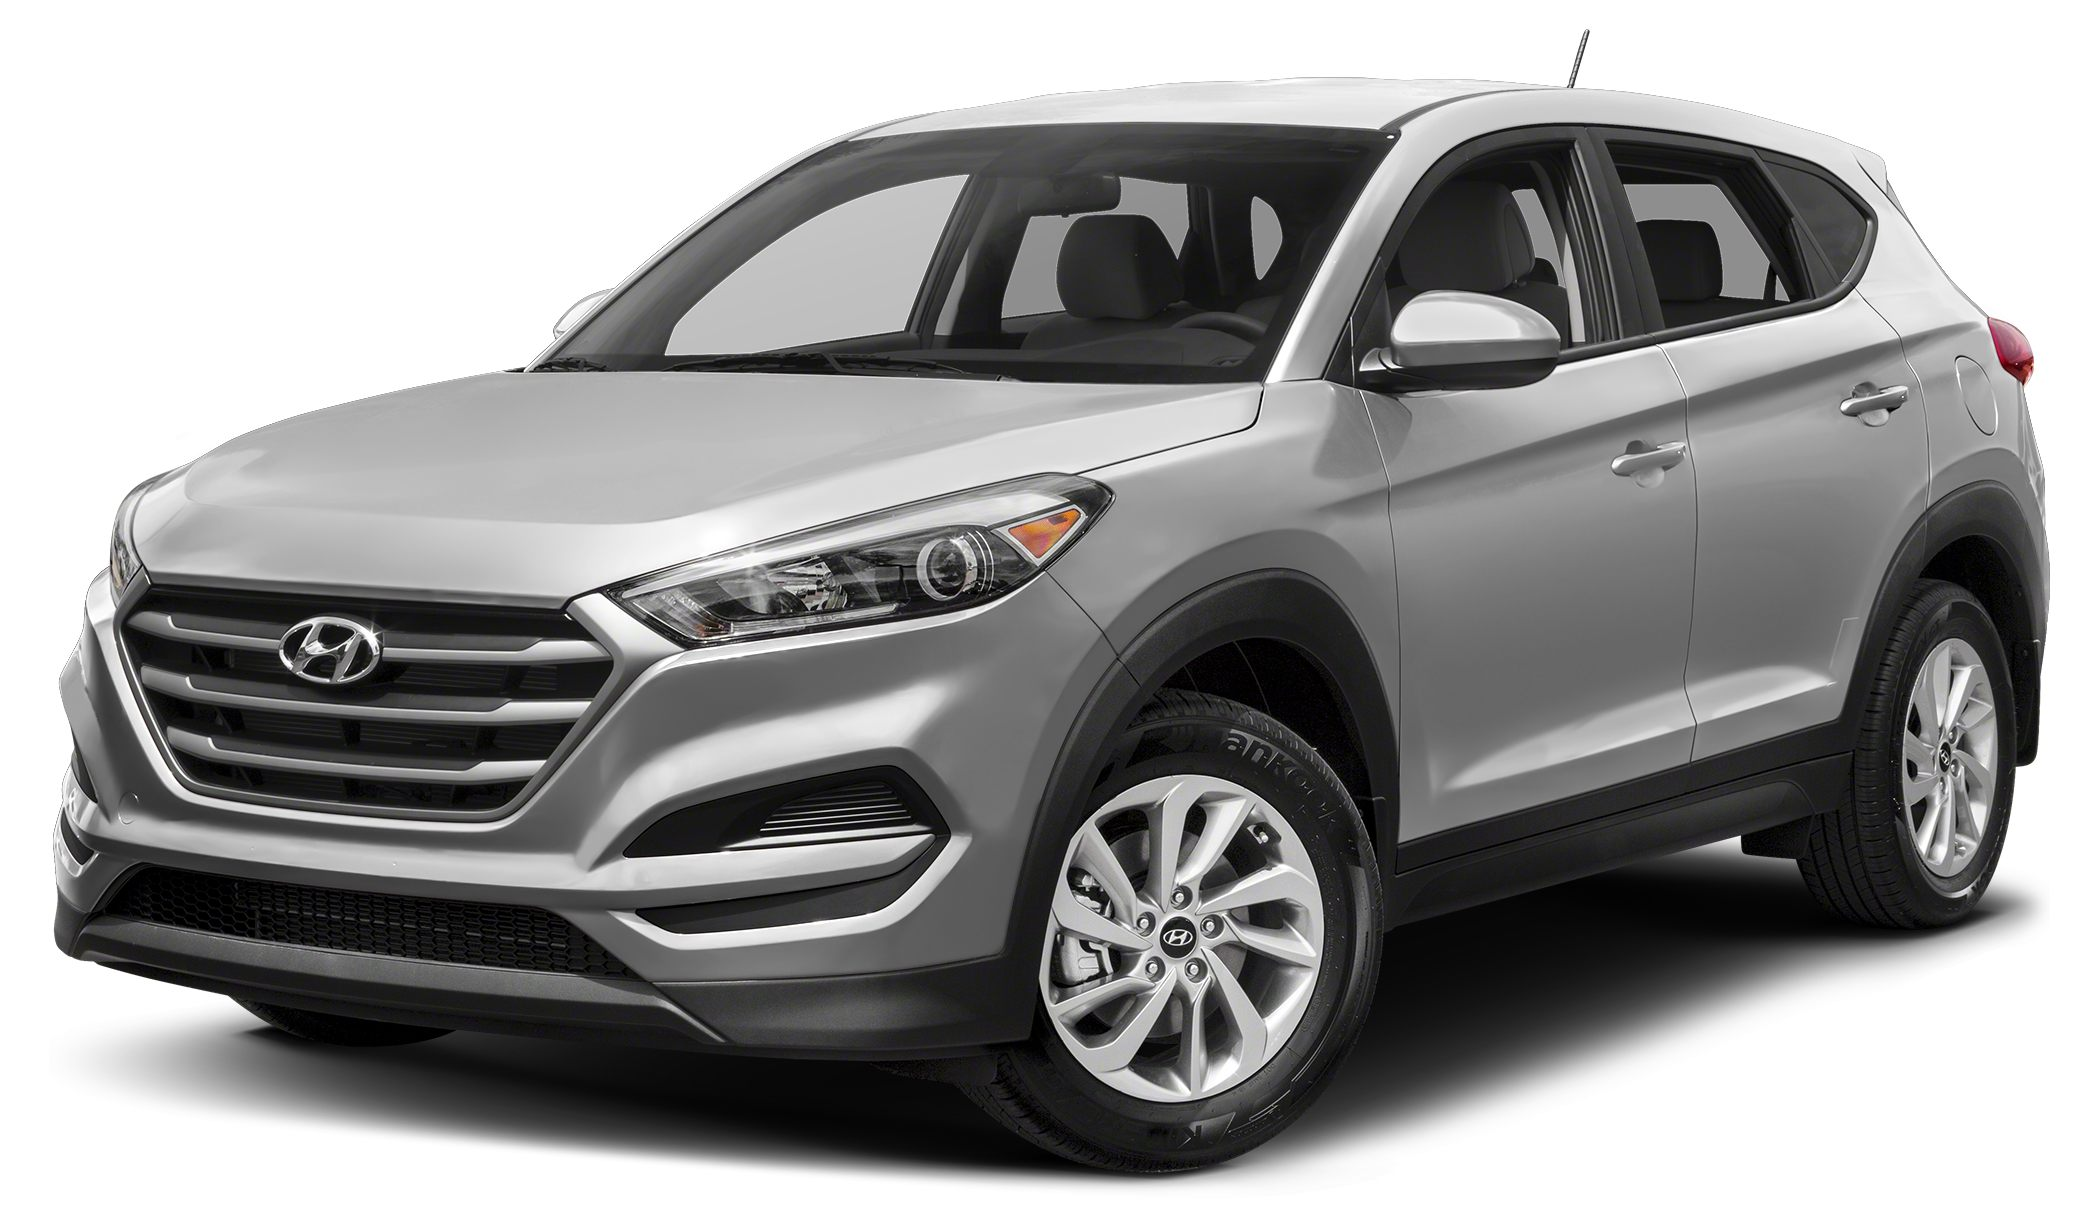 2017 Hyundai Tucson SE Recent Arrival WARRANTY FOREVER included at NO EXTRA COST See our Exc